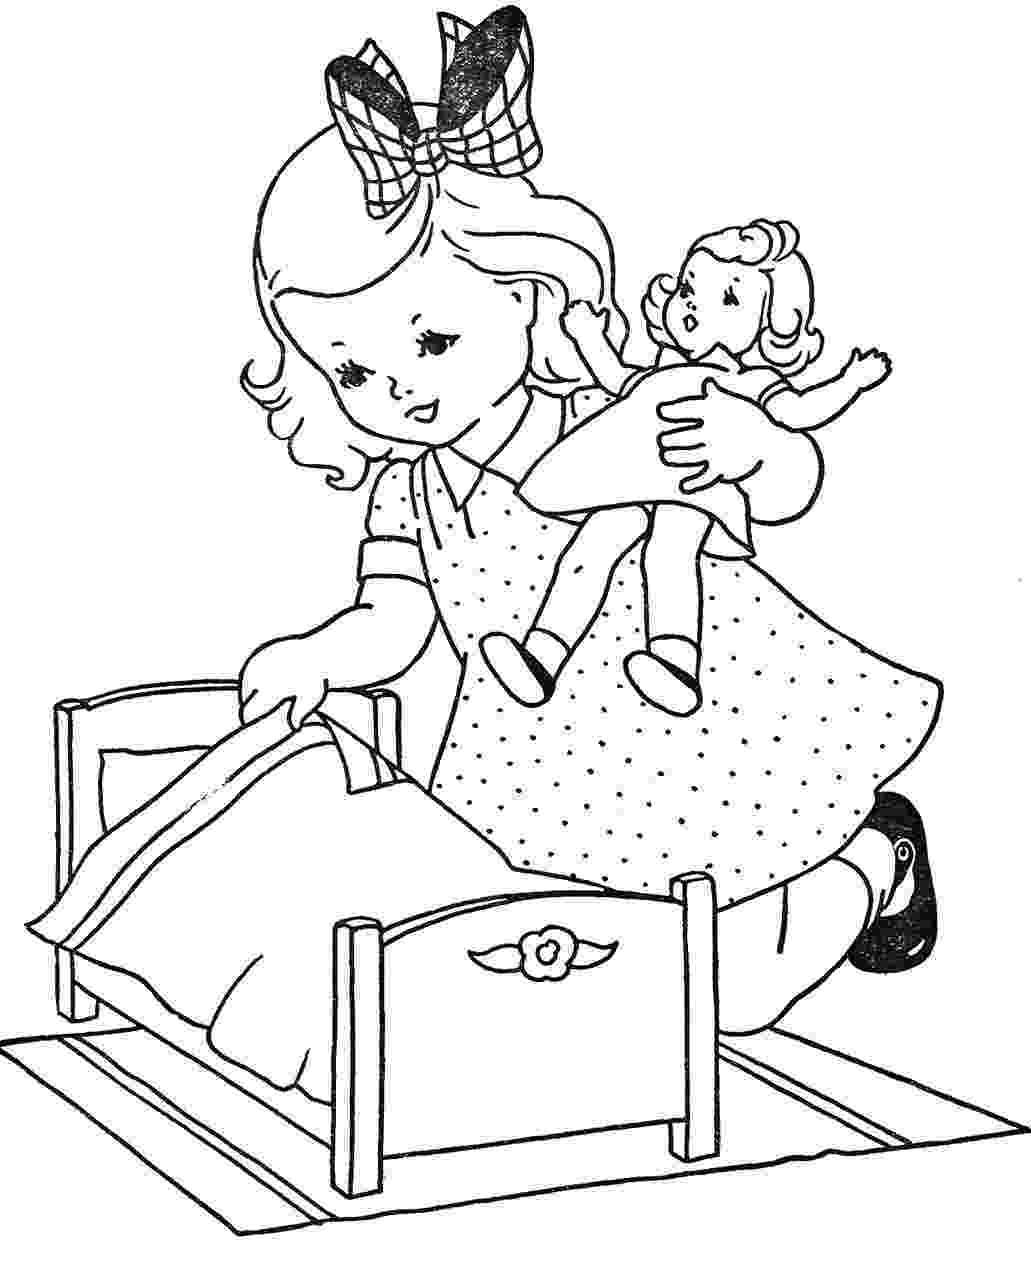 picture of a girl to color girl color page family people jobs coloring pages color of picture color to a girl